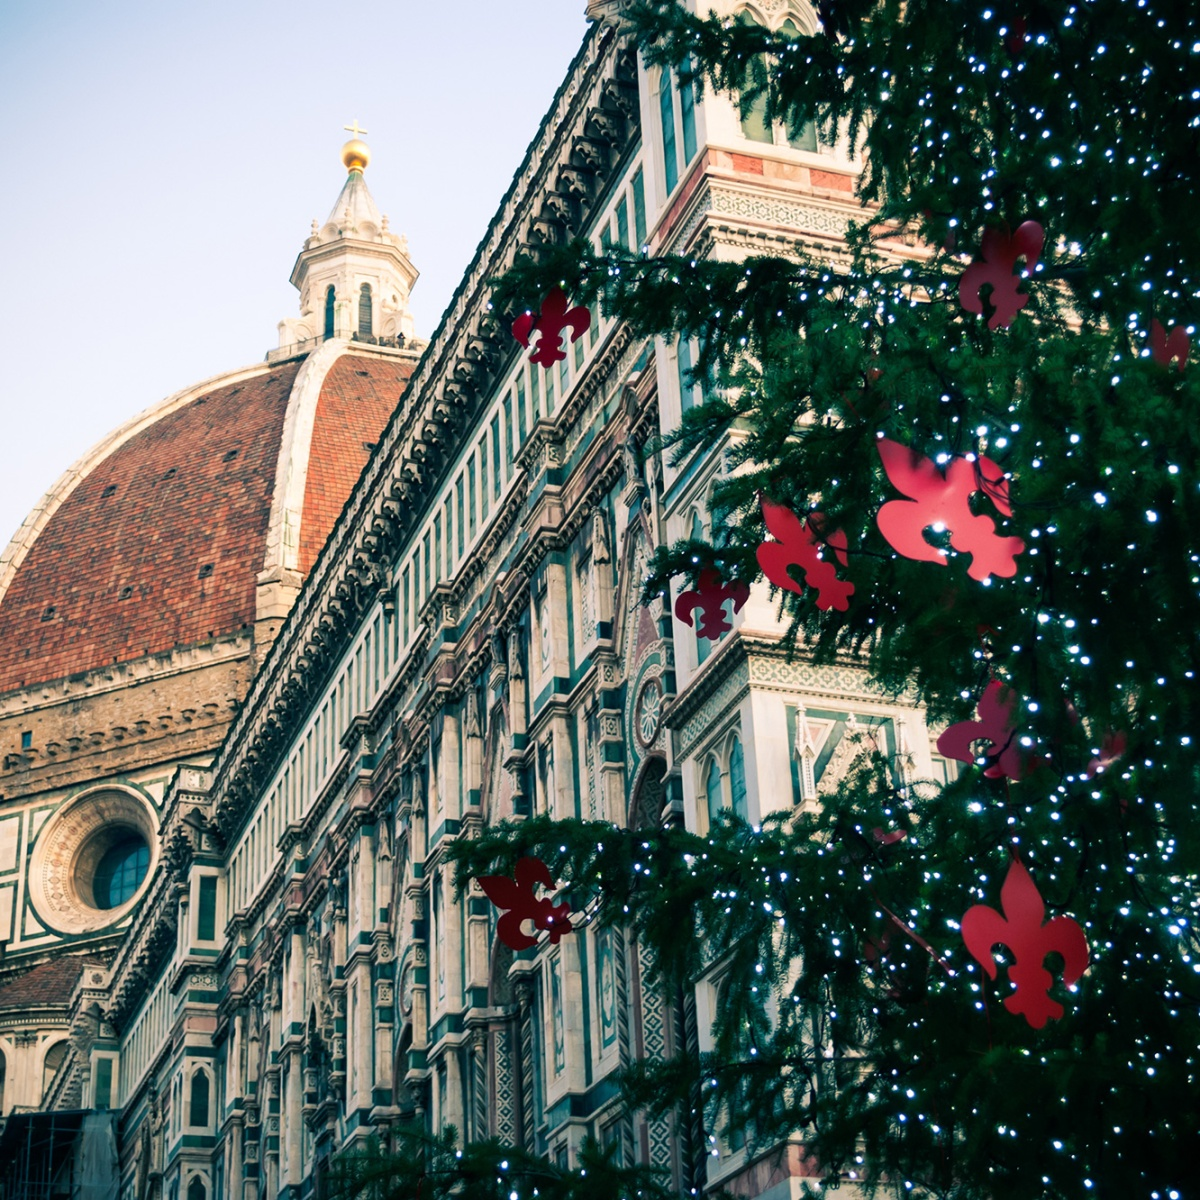 Christmas in Florence!